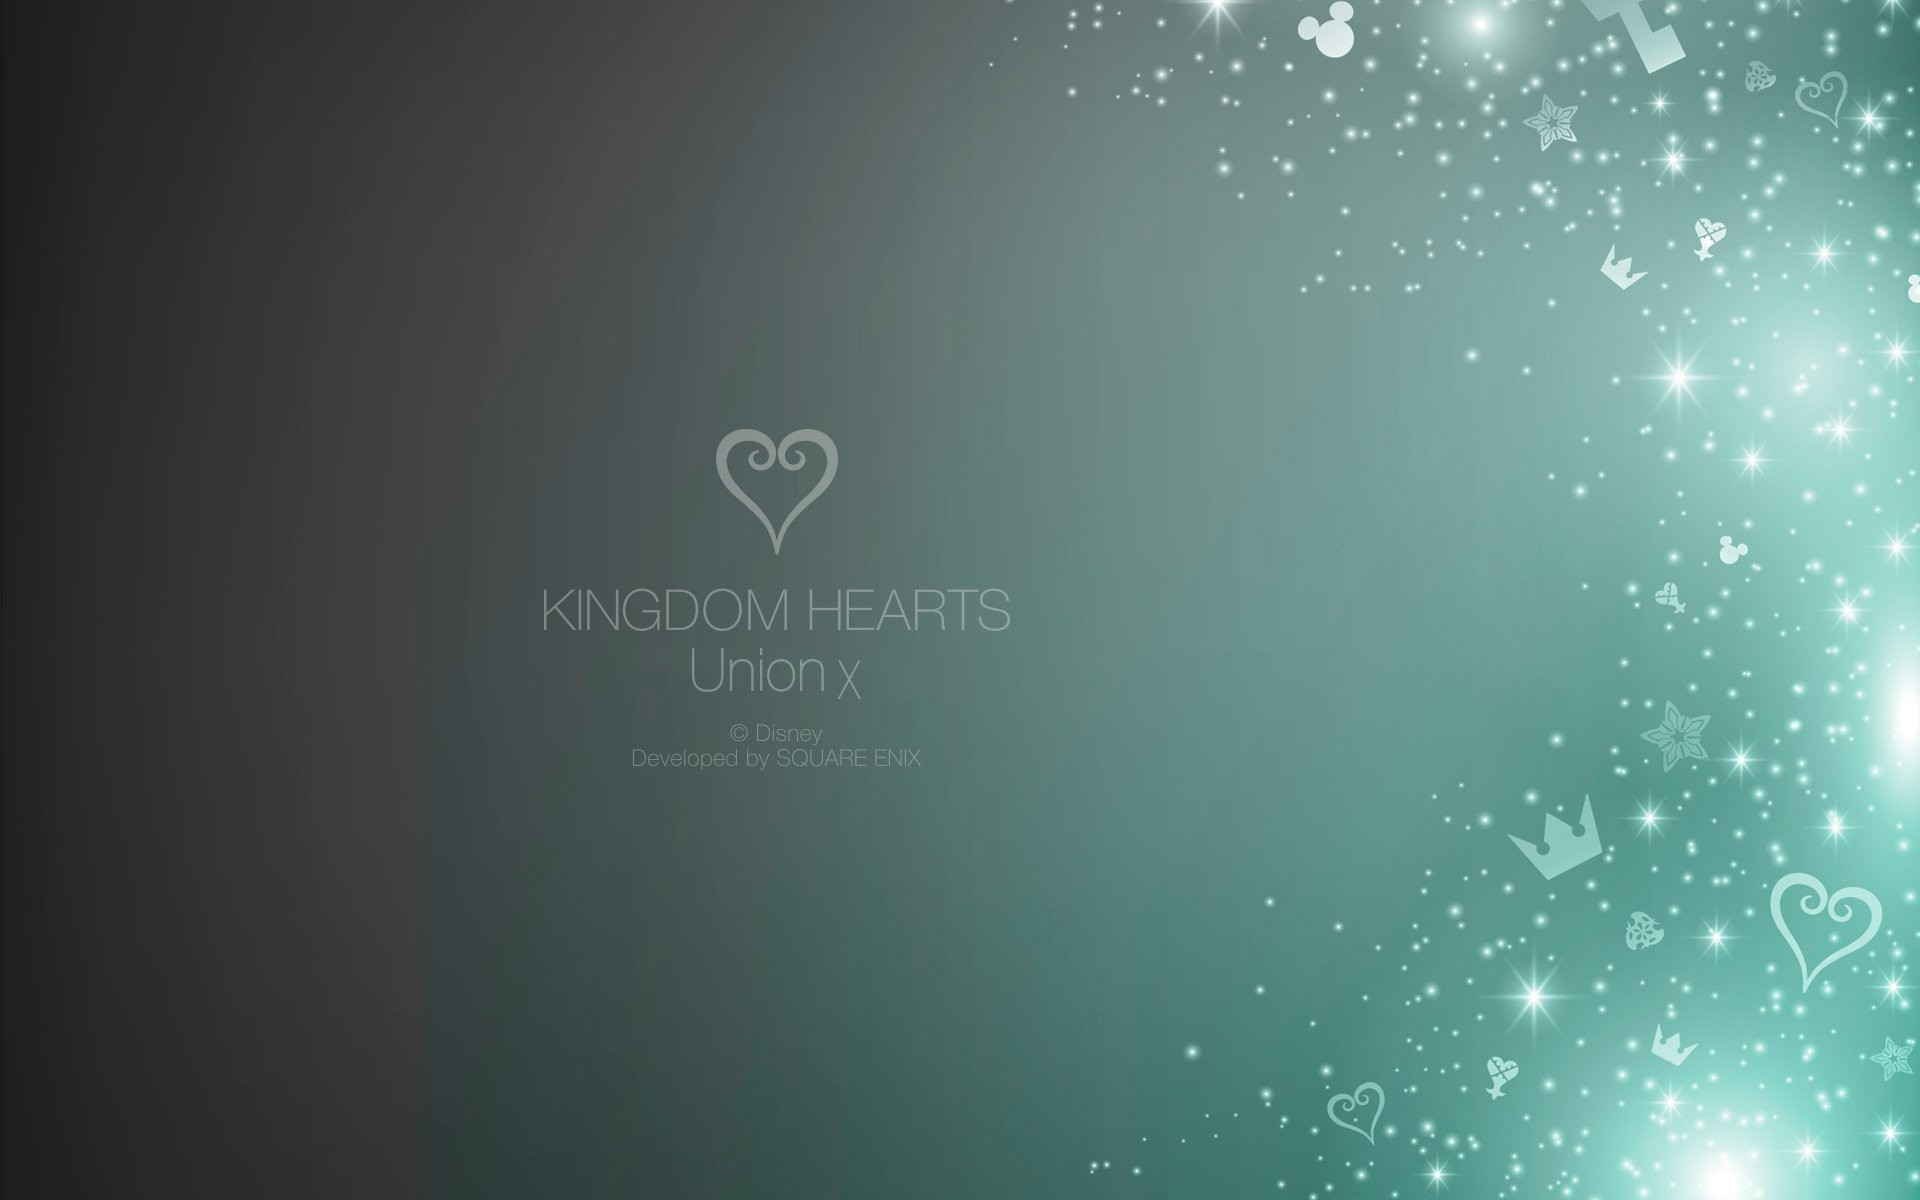 Res: 1920x1200, Kingdom Hearts Union X Wallpapers. Android. iPhone